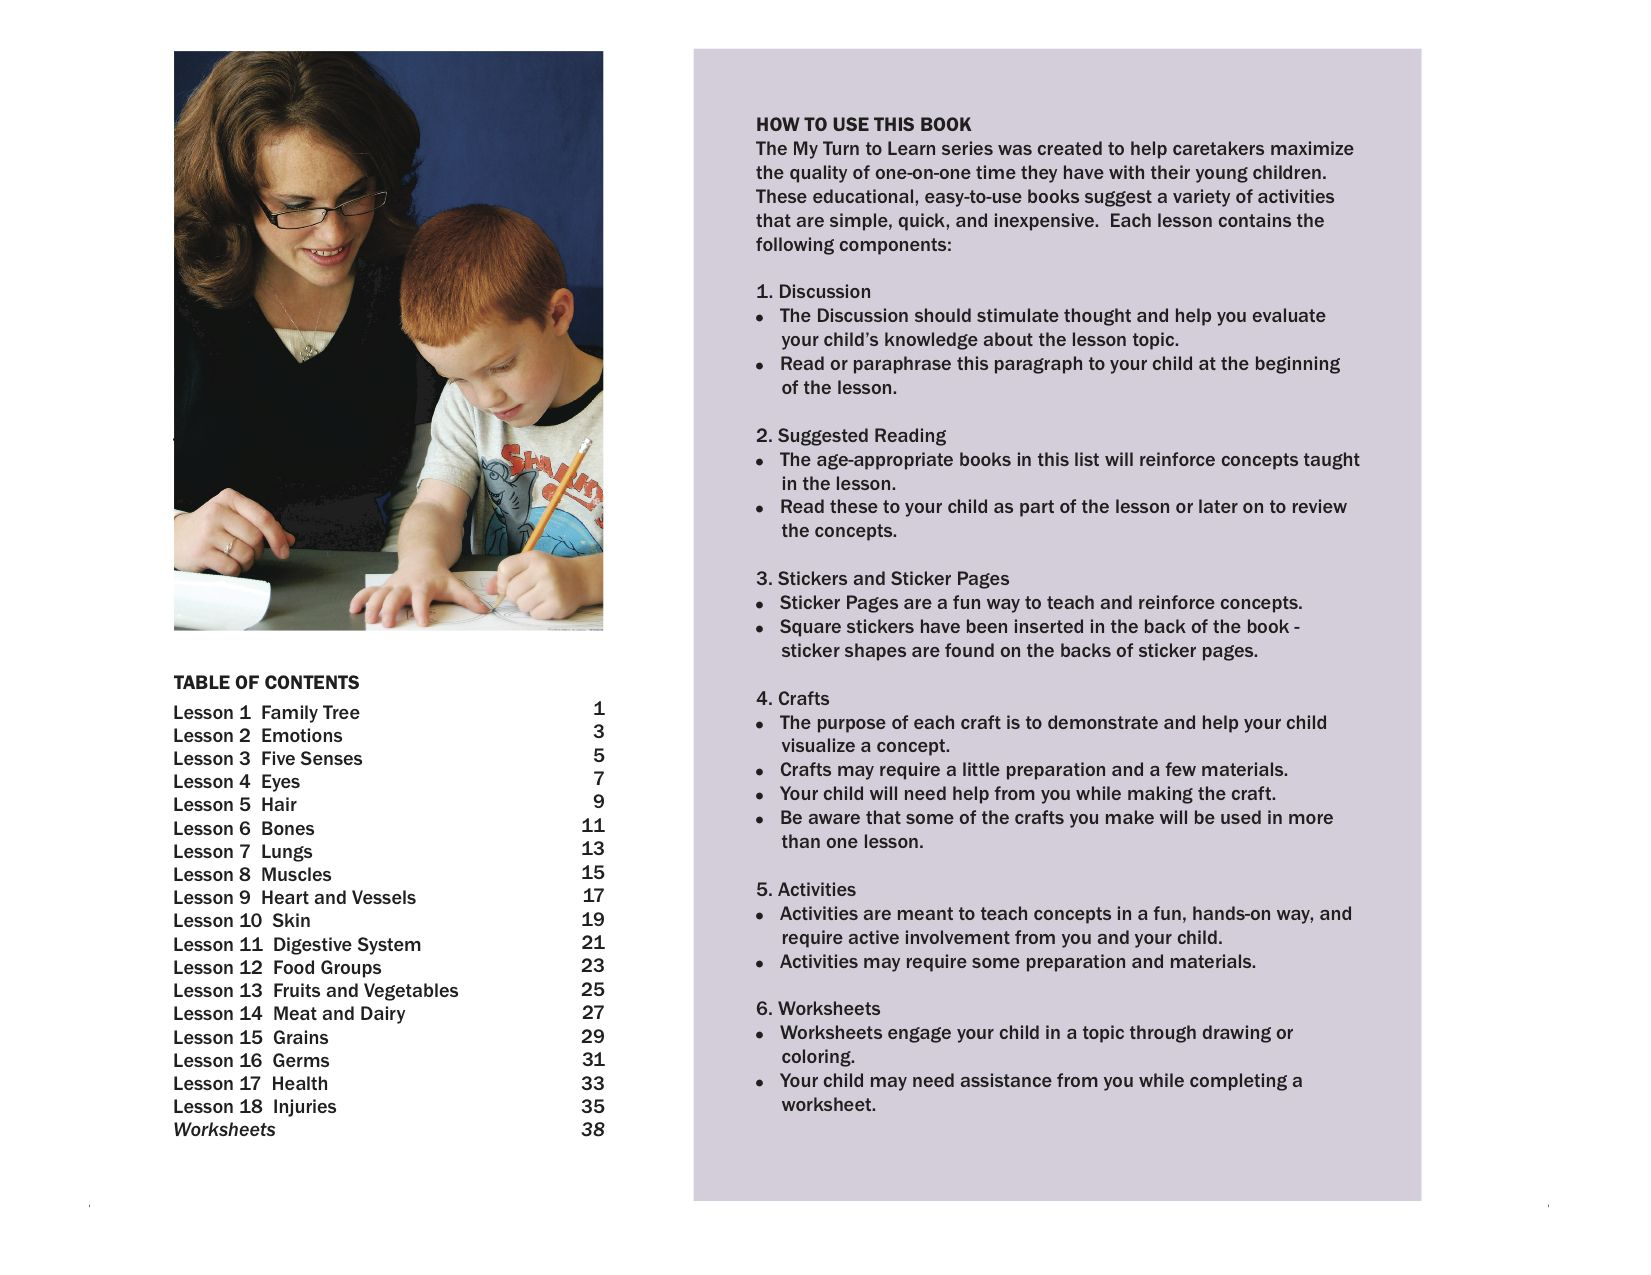 About Me Activity Book Table Of Contents